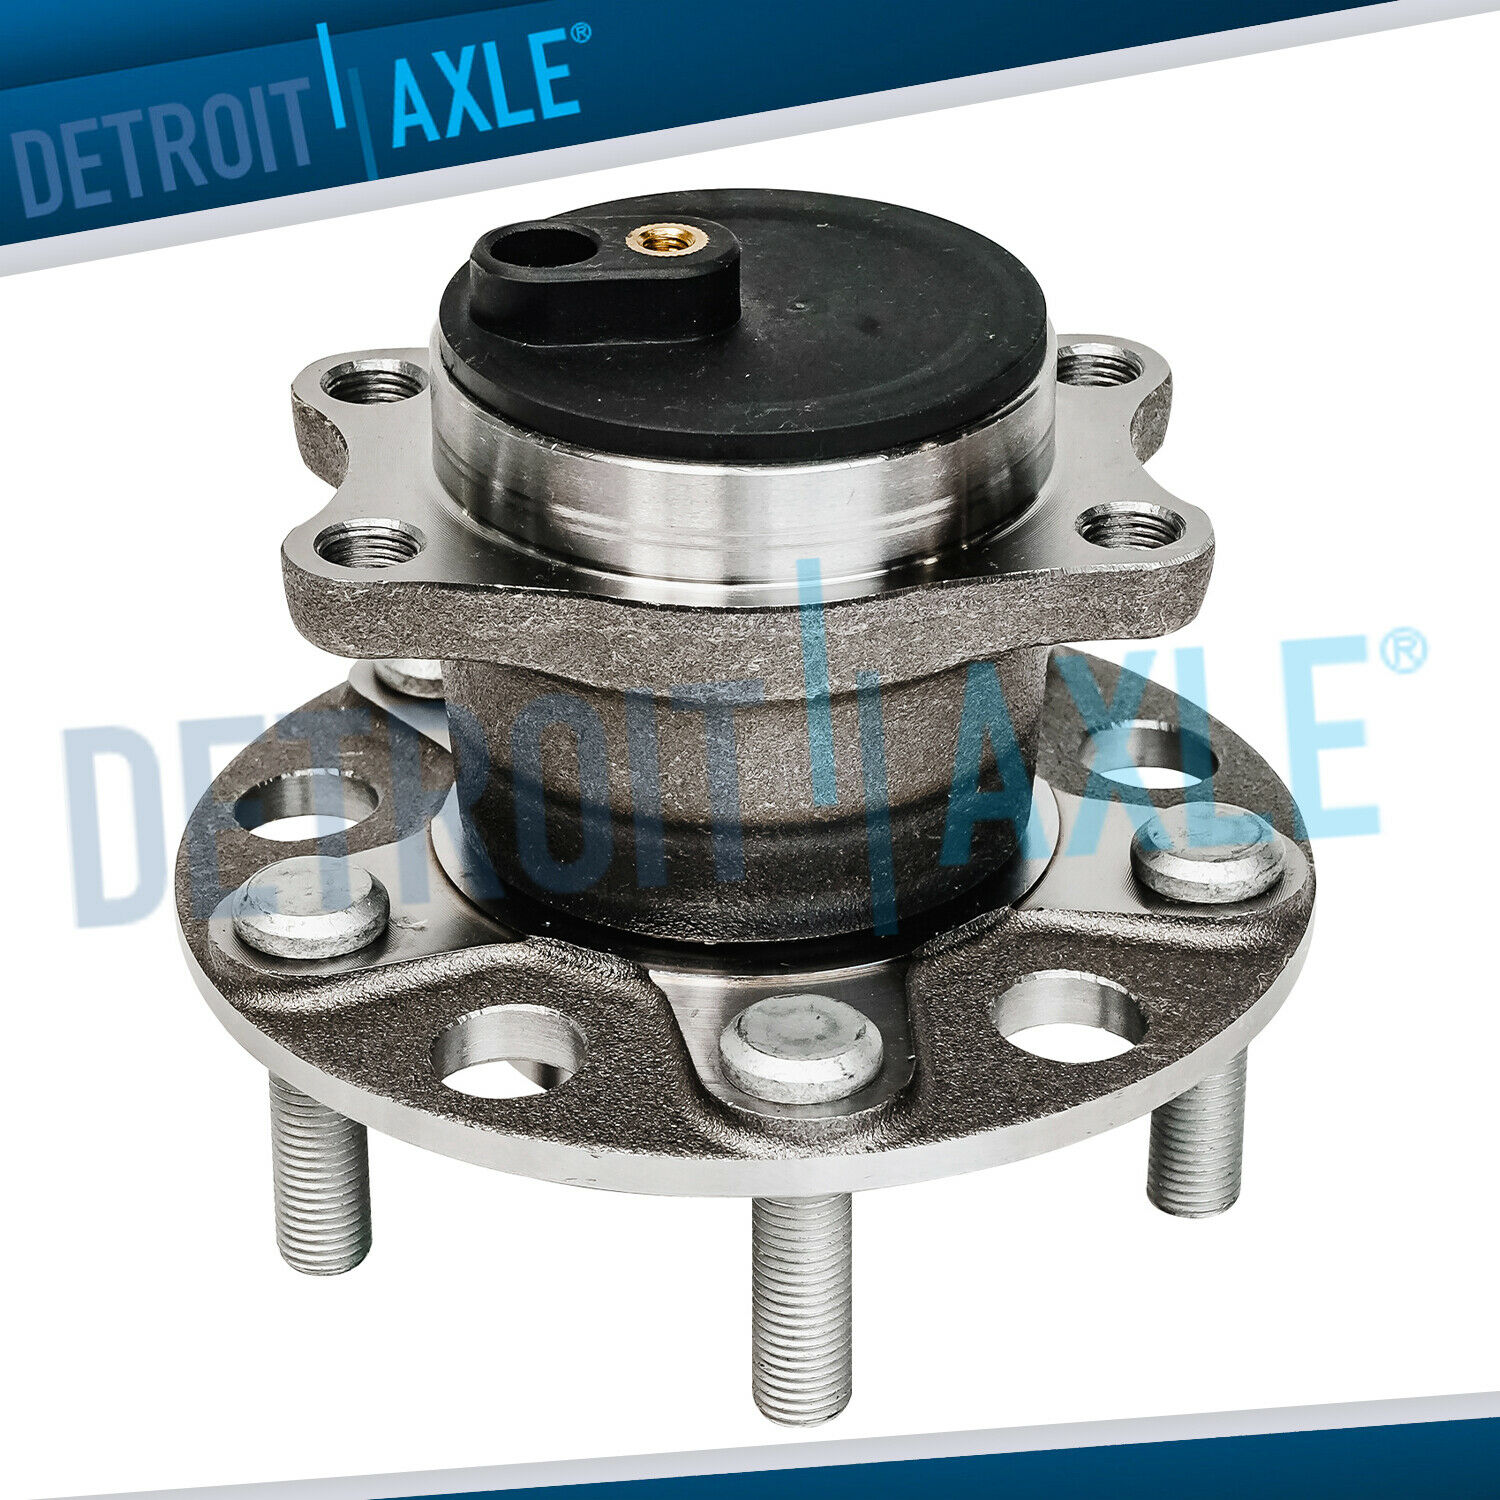 New Rear Complete Wheel Hub And Bearing Assembly For Chrysler Dodge 2000 Kia Sportage Drum Brake Diagram 1 Of 1free Shipping